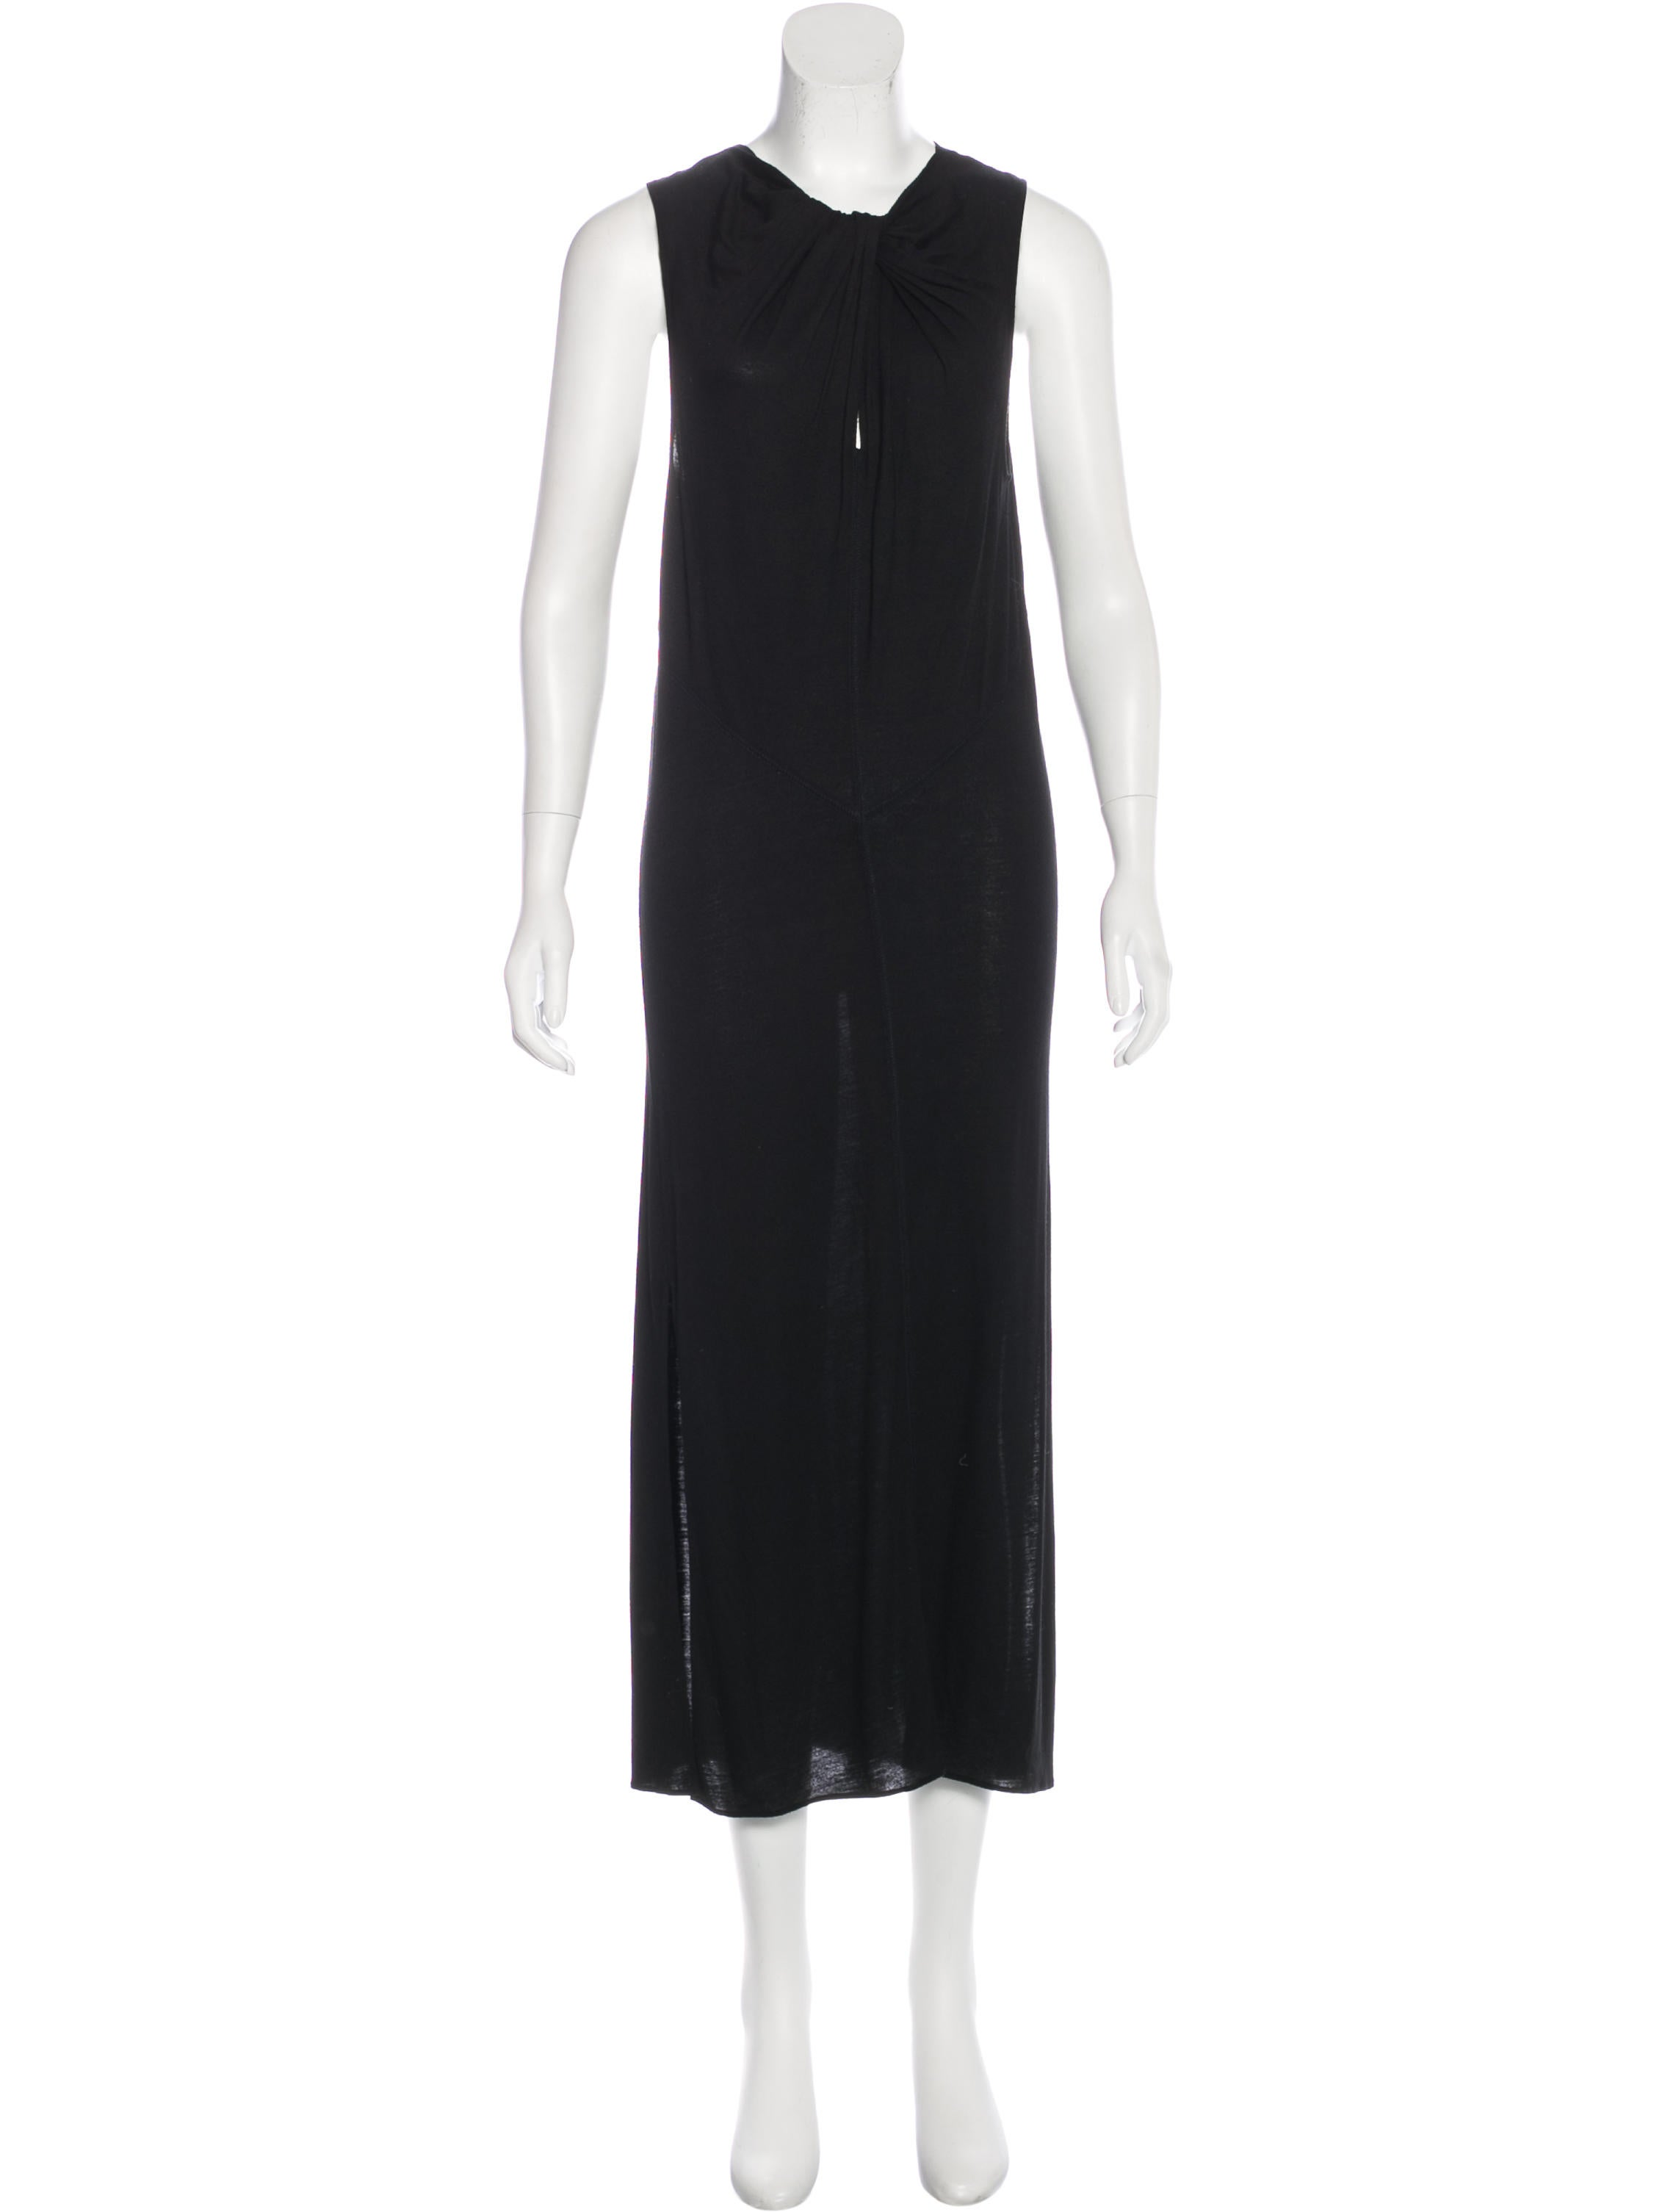 Derek lam 10 crosby sleeveless maxi dress clothing for Derek lam 10 crosby shirt dress